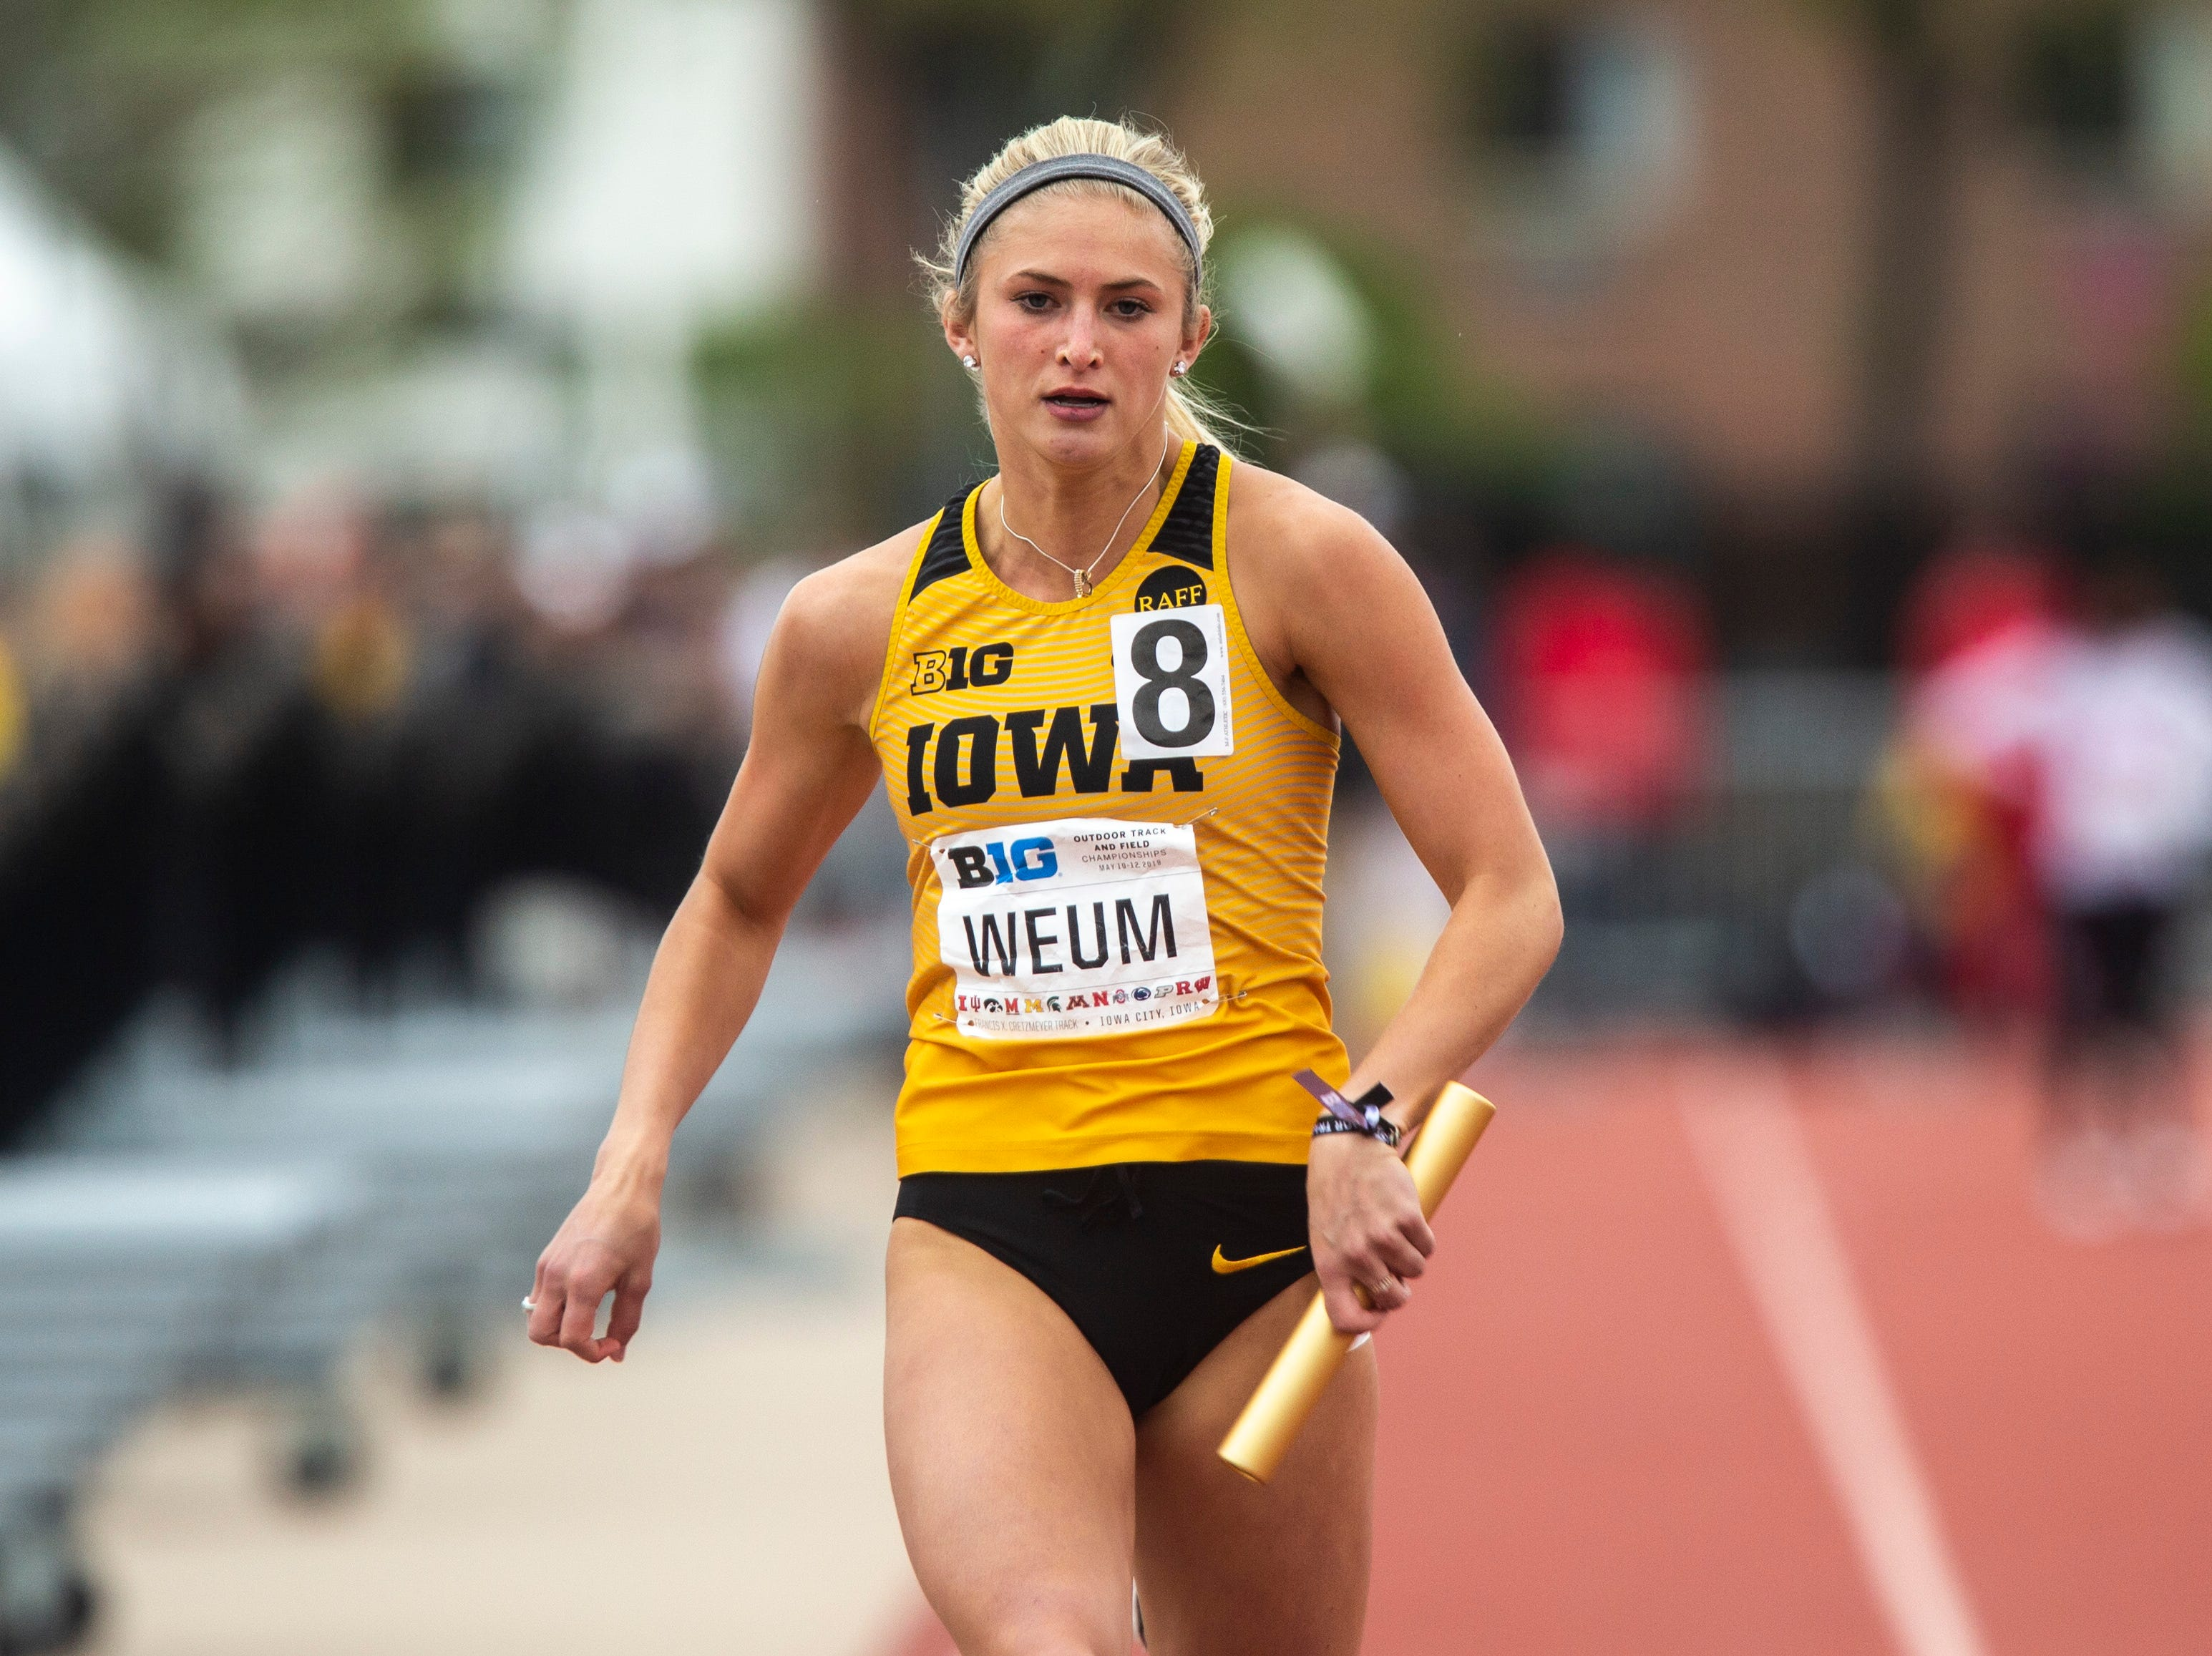 Iowa's Aly Weum anchors in the 4x100 meter relay during the final day of Big Ten track and field outdoor championships, Sunday, May 12, 2019, at Francis X. Cretzmeyer Track on the University of Iowa campus in Iowa City, Iowa.